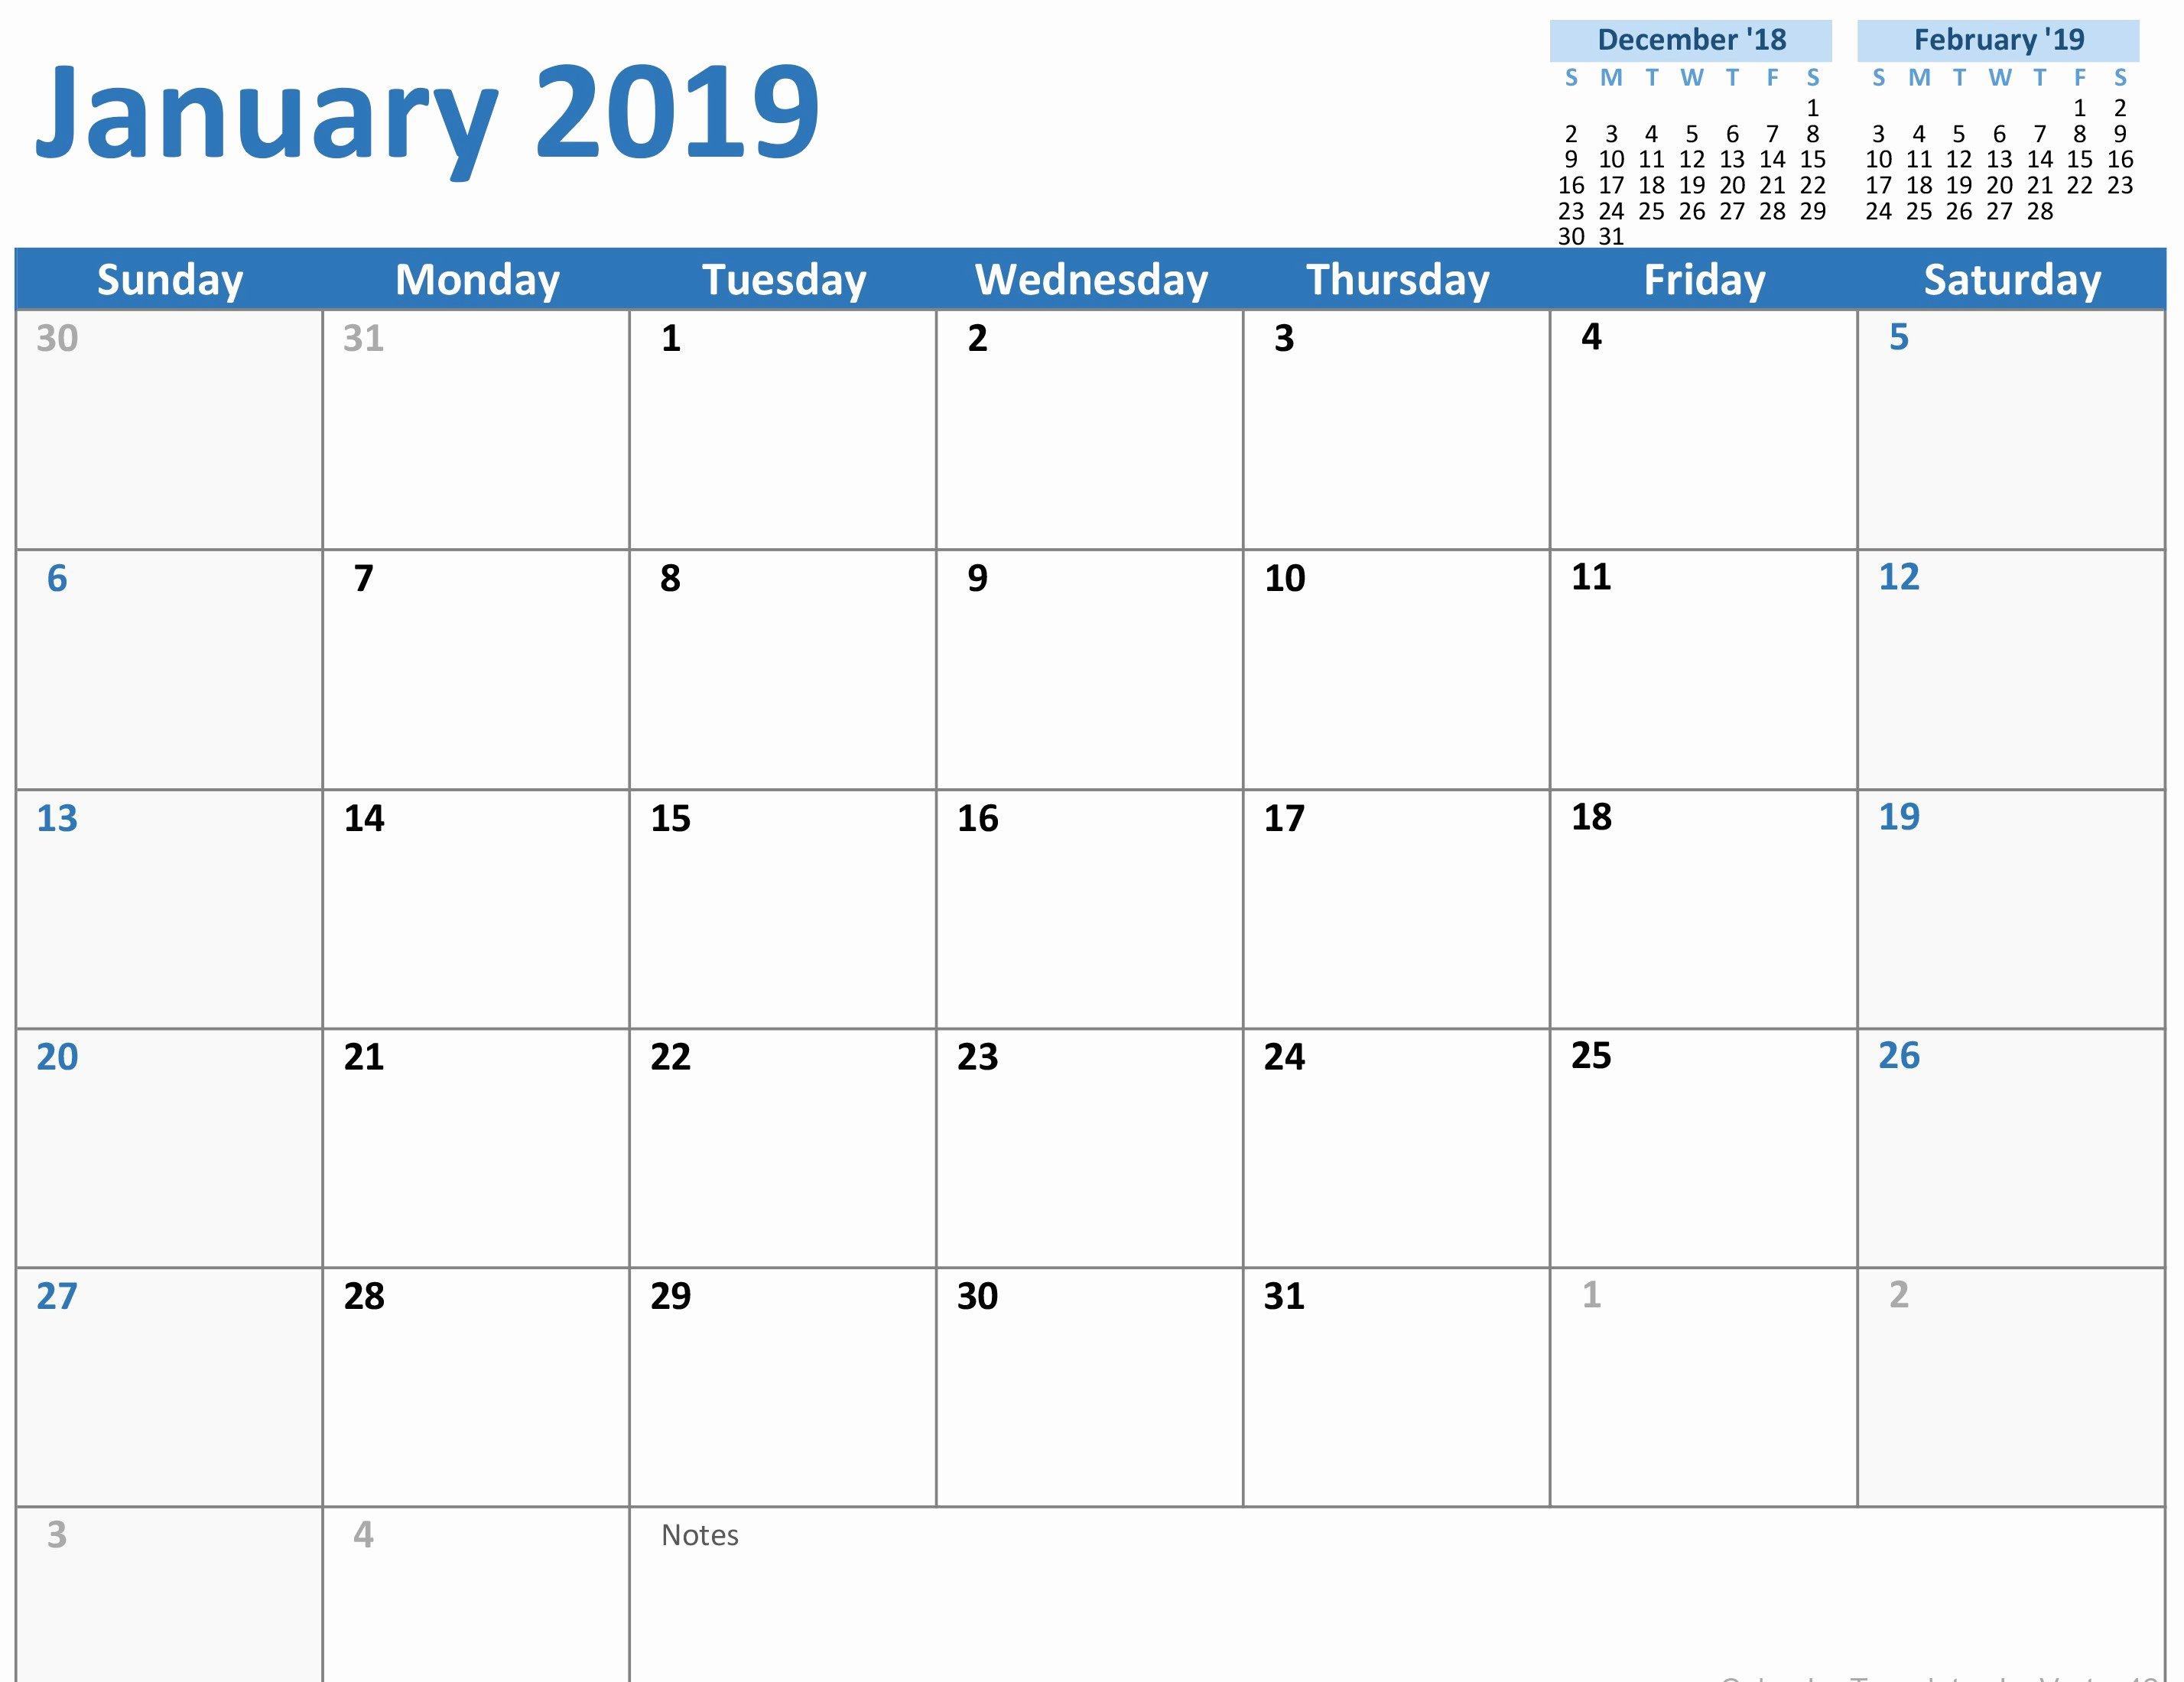 Free 2019 Calendar Template Best Of 250 Free January 2019 Calendar Printable Templates